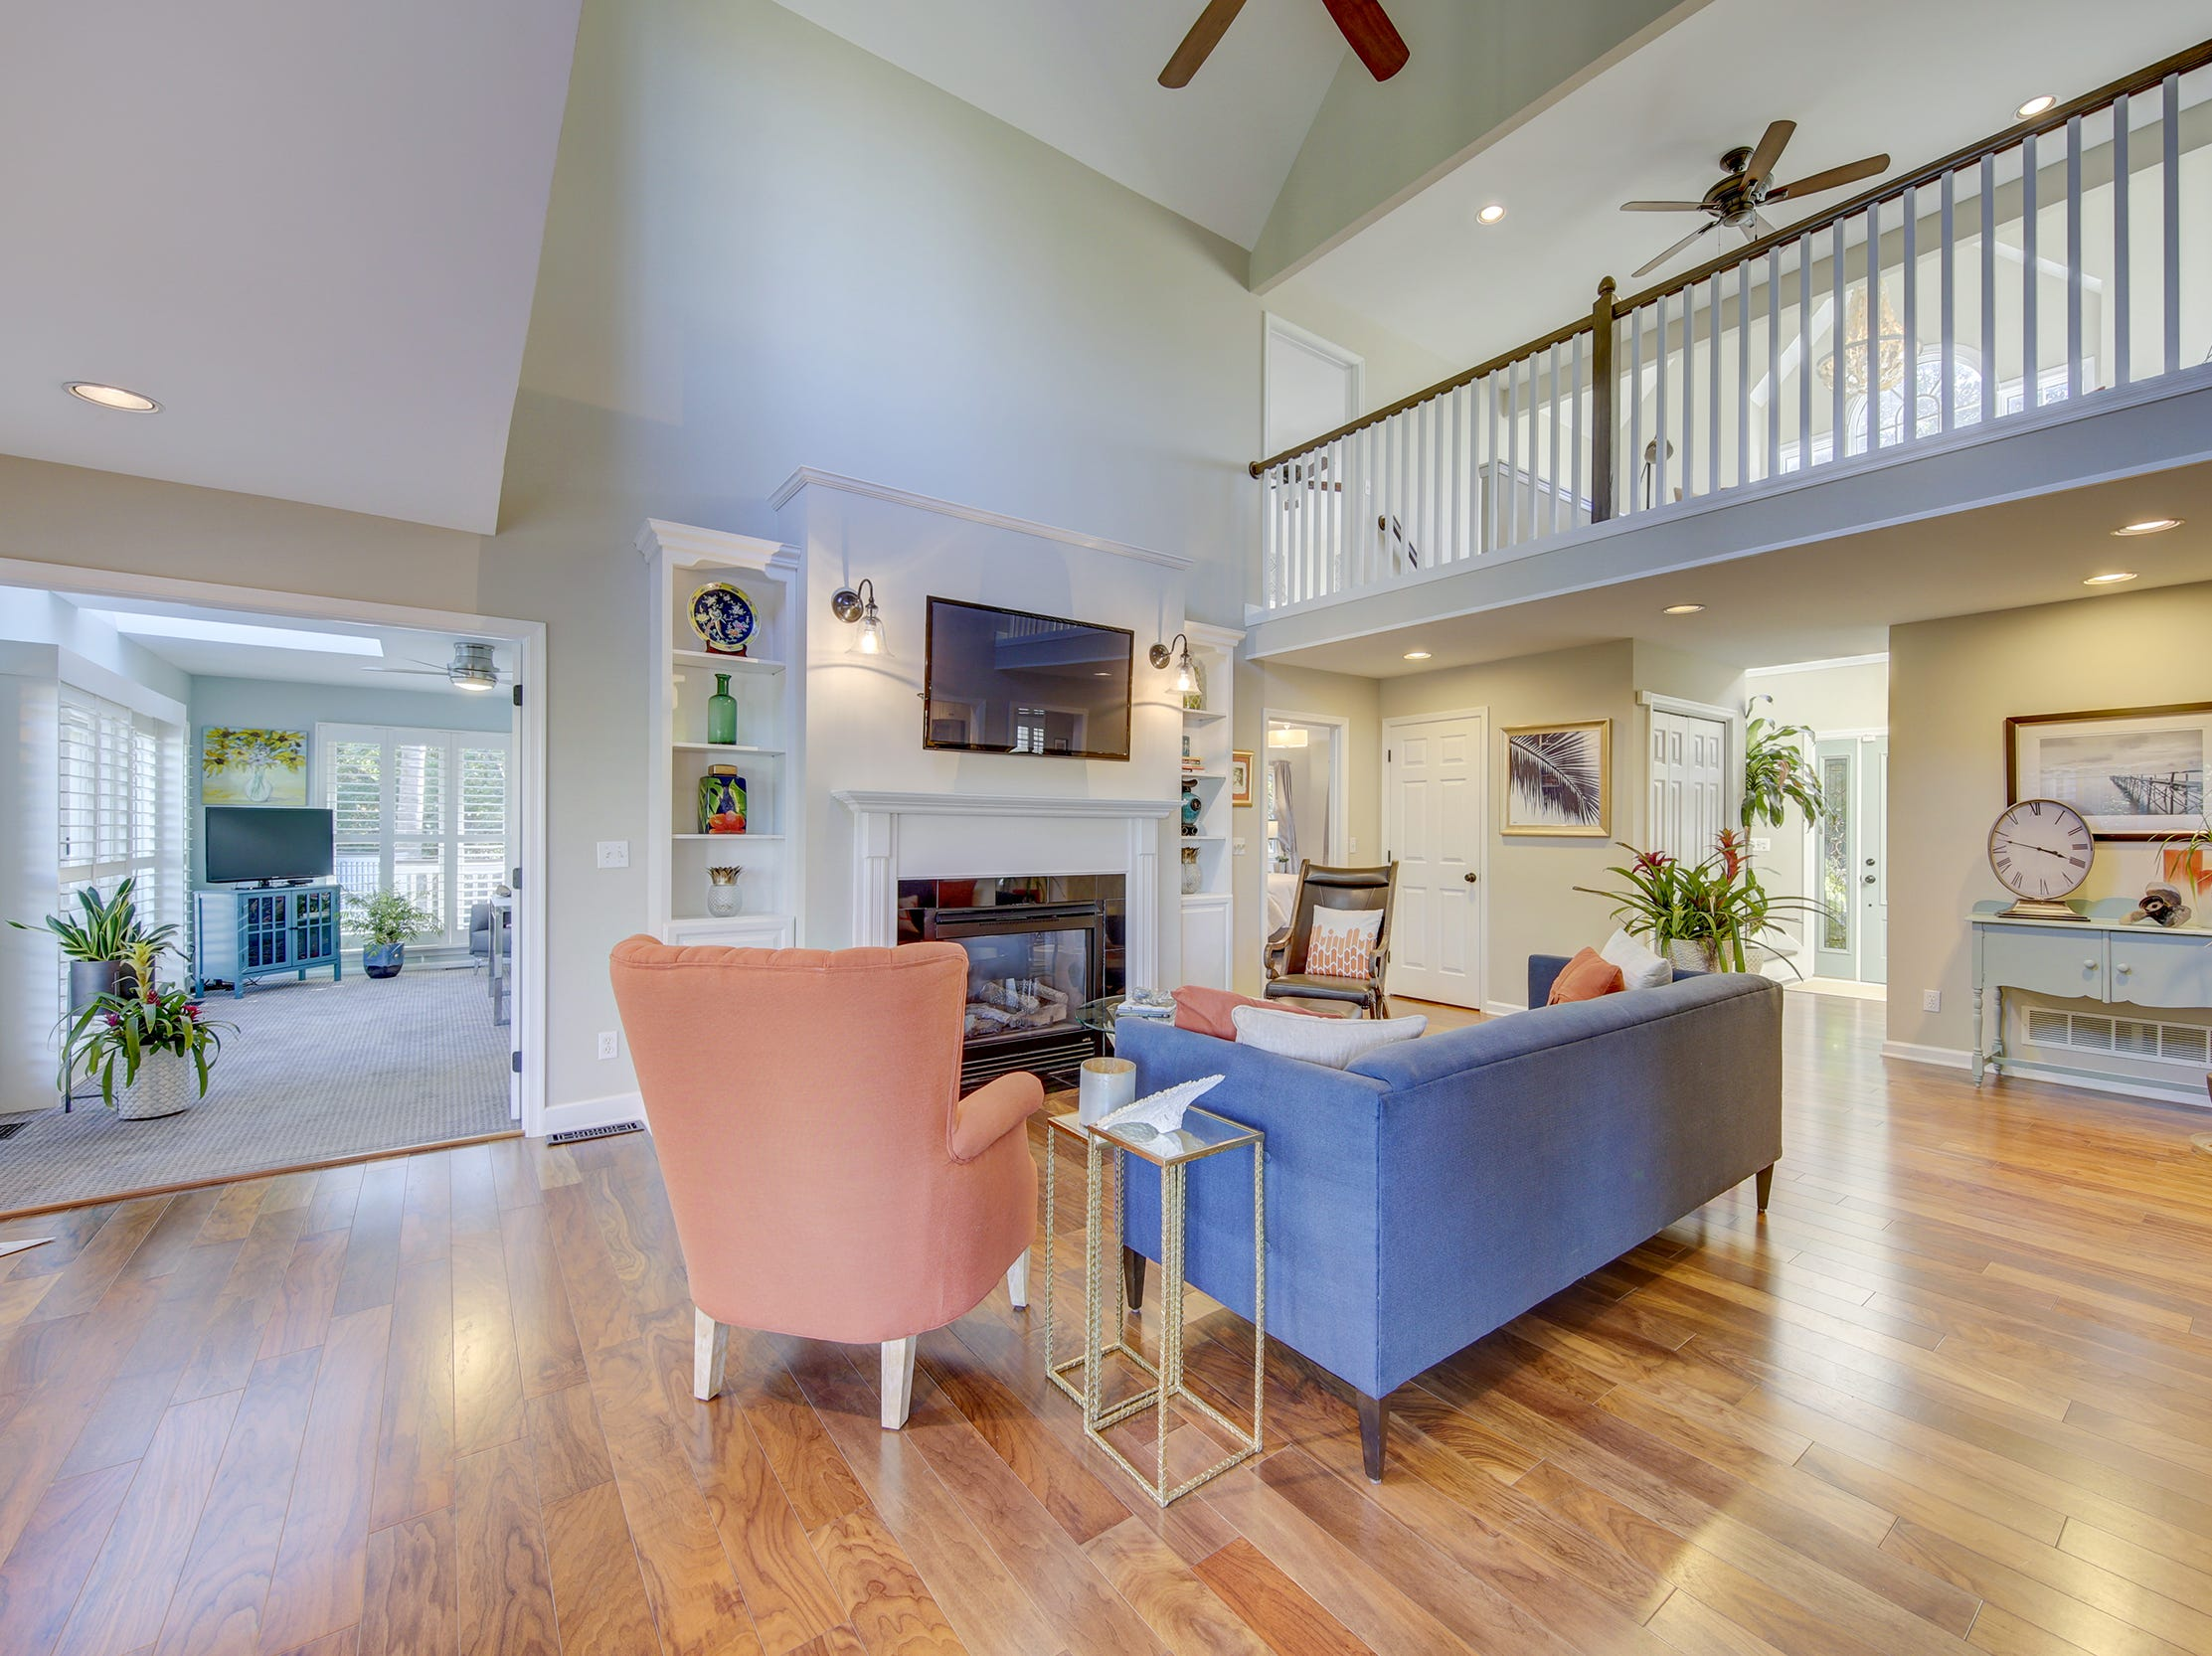 The house at 204 Lakeview Shores in The Glades has a two-story entryway.